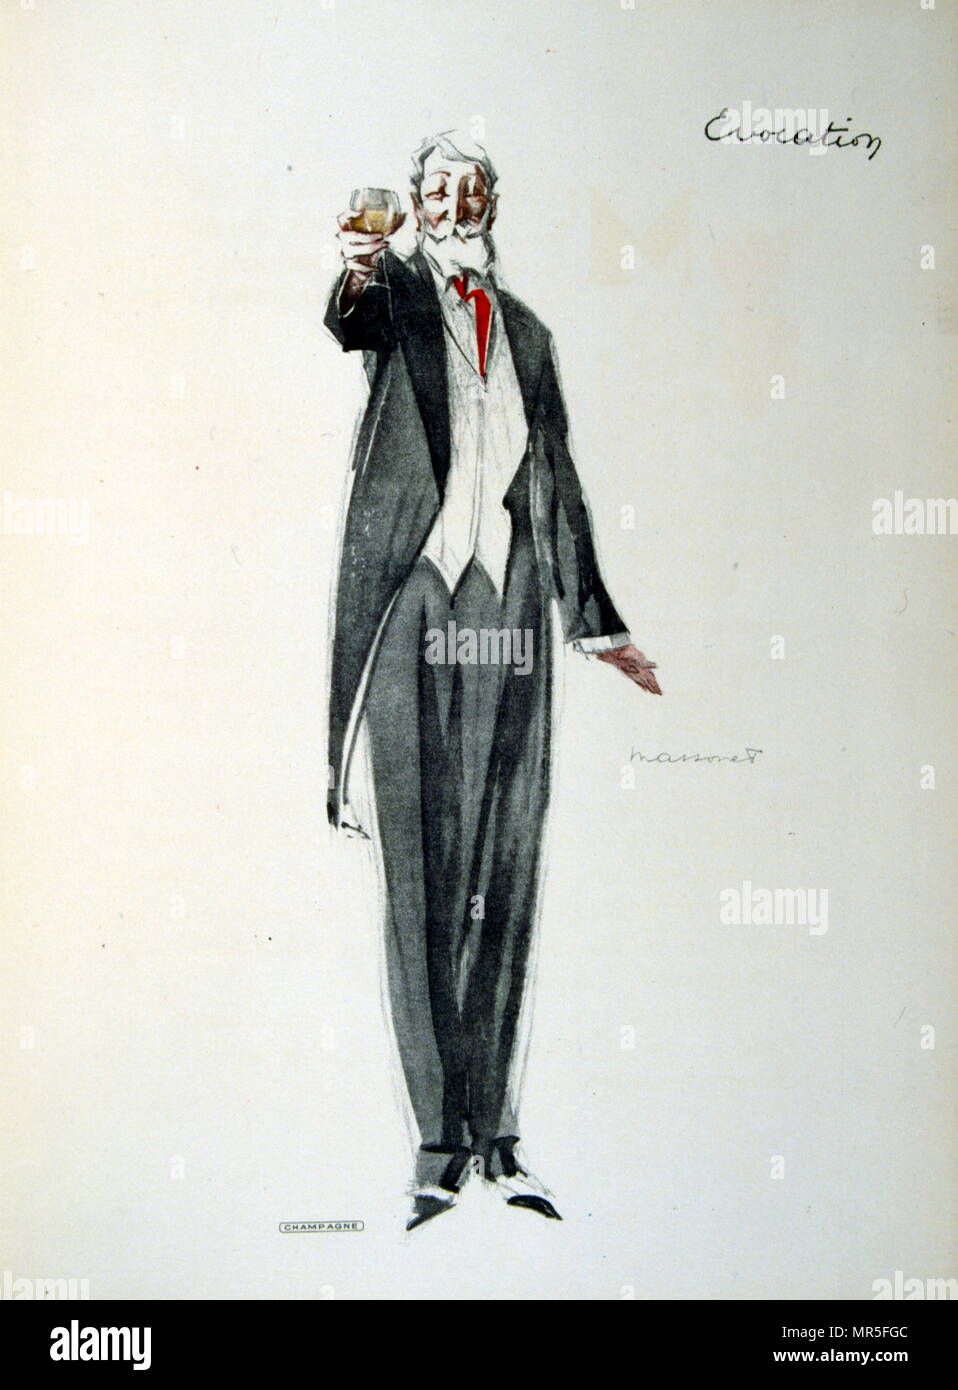 French 1930's illustration of a wealthy man holding a glass of champagne. - Stock Image